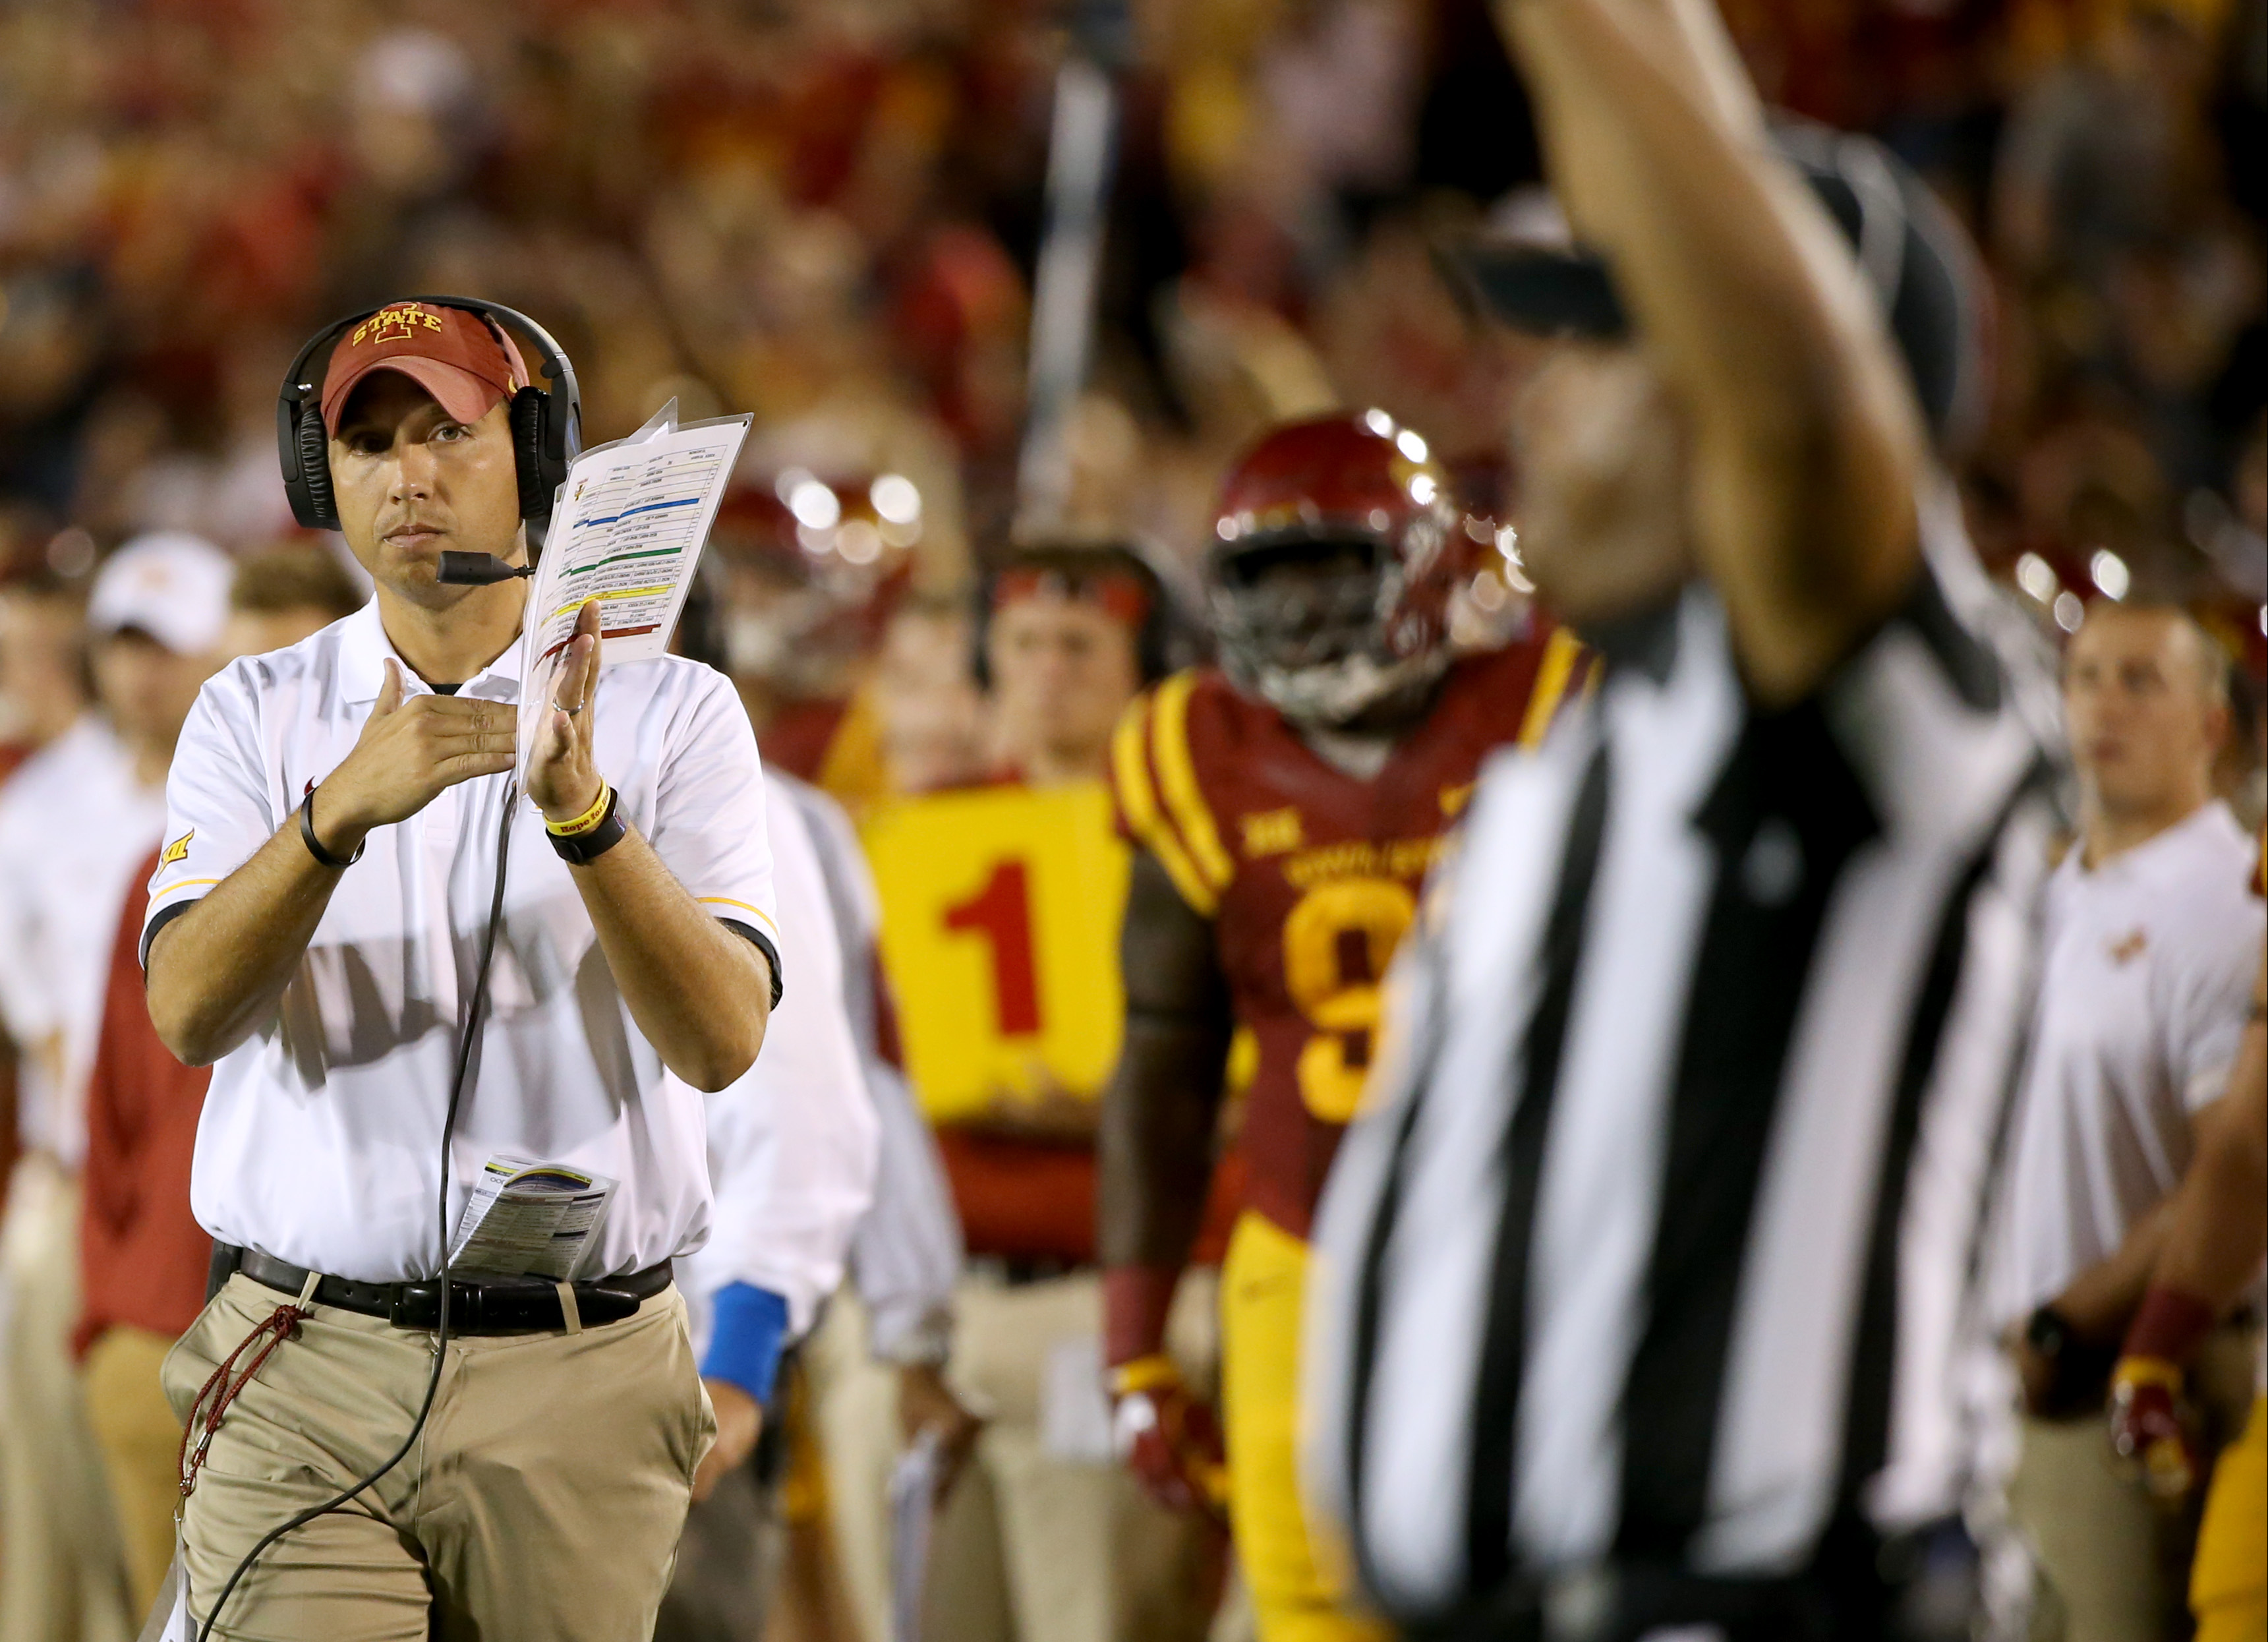 Iowa State coach Matt Campbell calls for a timeout during the second half of an NCAA college football game against Northern Iowa, Saturday, Sept. 3, 2016, in Ames, Iowa. Northern Iowa won 25-20. (AP Photo/Justin Hayworth)